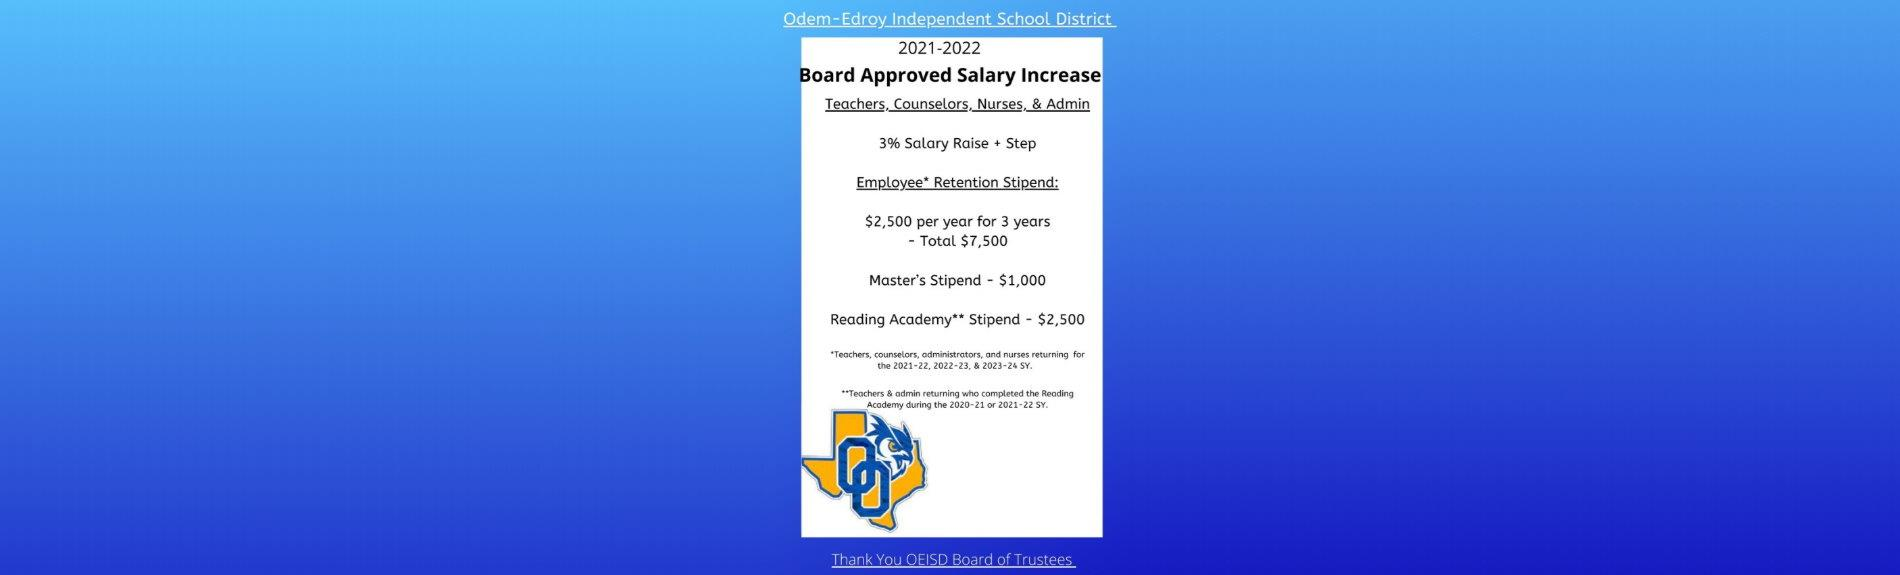 OEISD - Board Approved Salary Increase